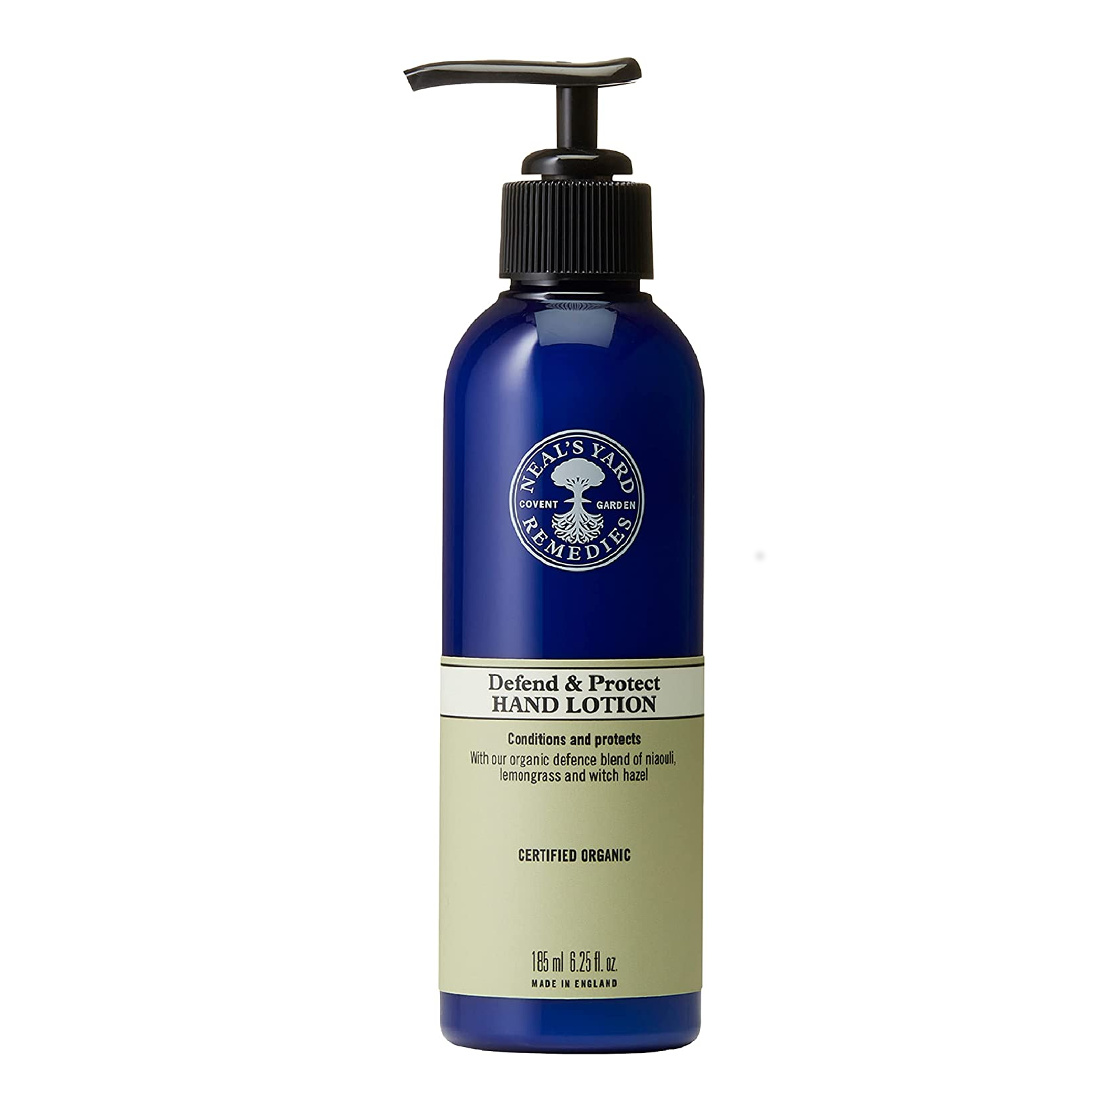 Neal's Yard Remedies Defend and Protect Hand Lotion 185ml